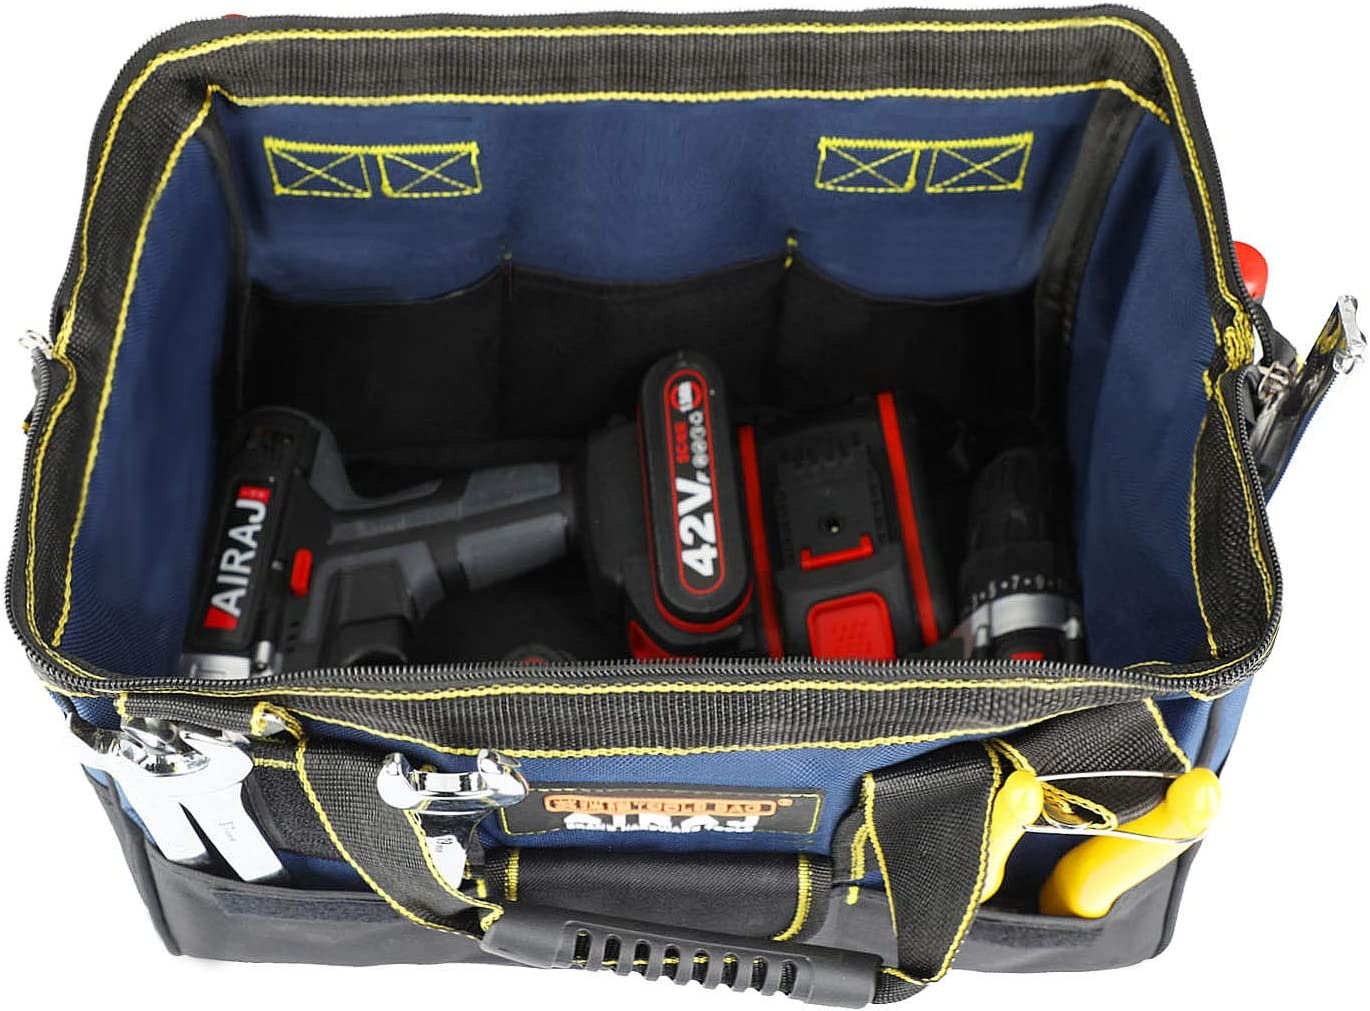 AIRAJ 18 in Tool Bag Wide Mouth Storage Tool Organizer with Adjustable Shoulder Strap Zip-Top Opened Large Capacity Tool Case for Men,Gift MINI Parts Box